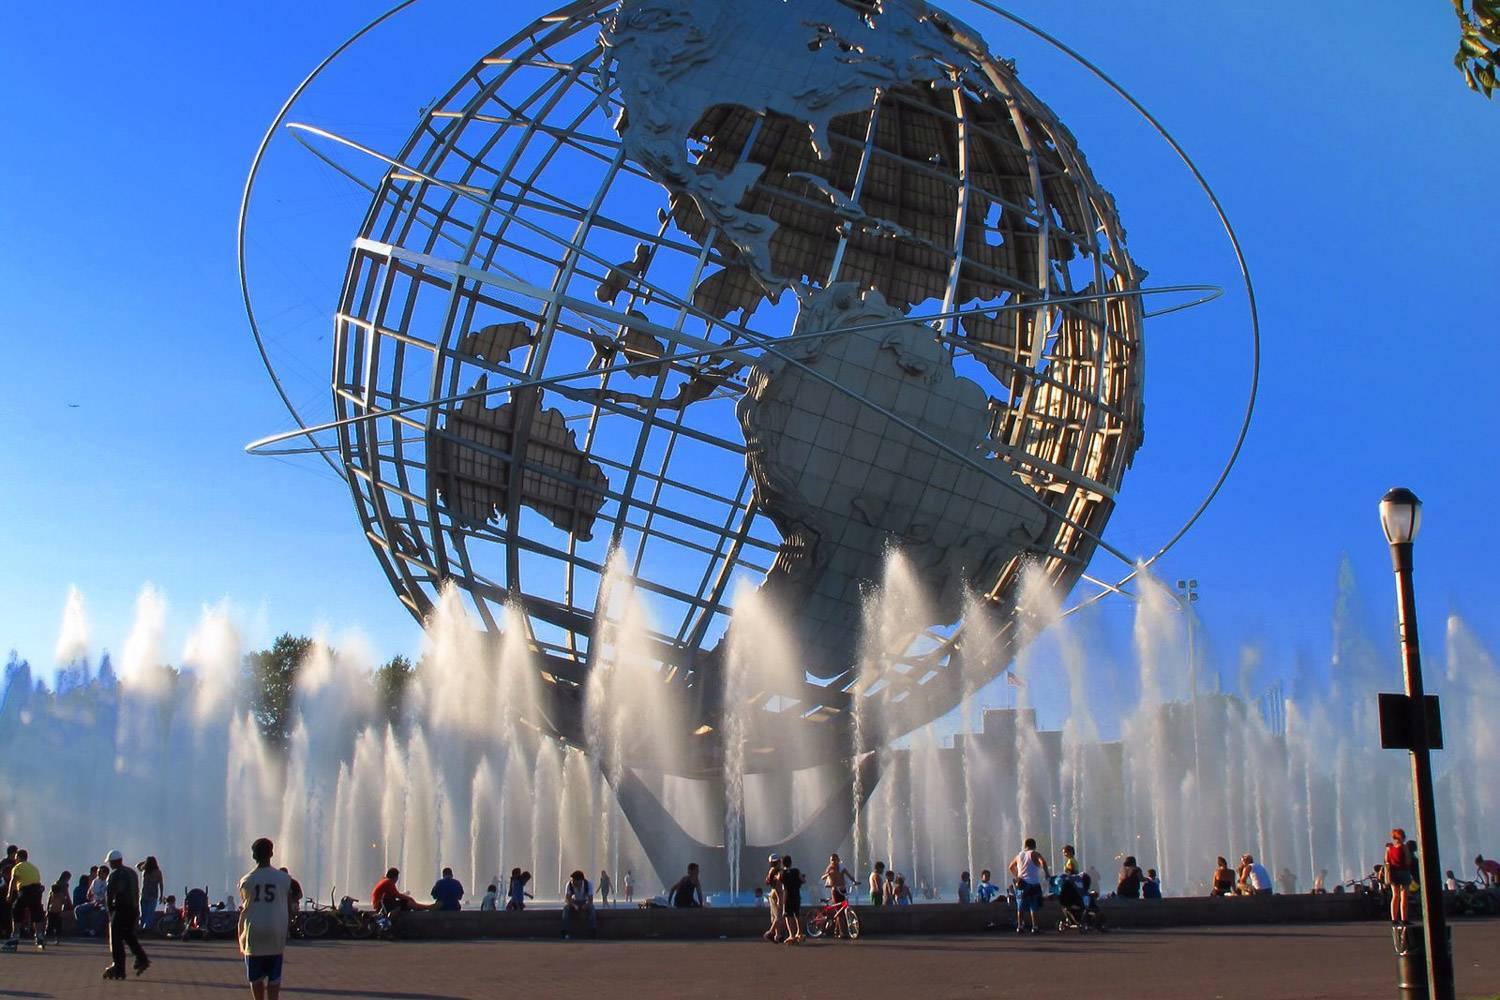 Image of fountains around the World Sphere in Flushing Meadows Park in Queens